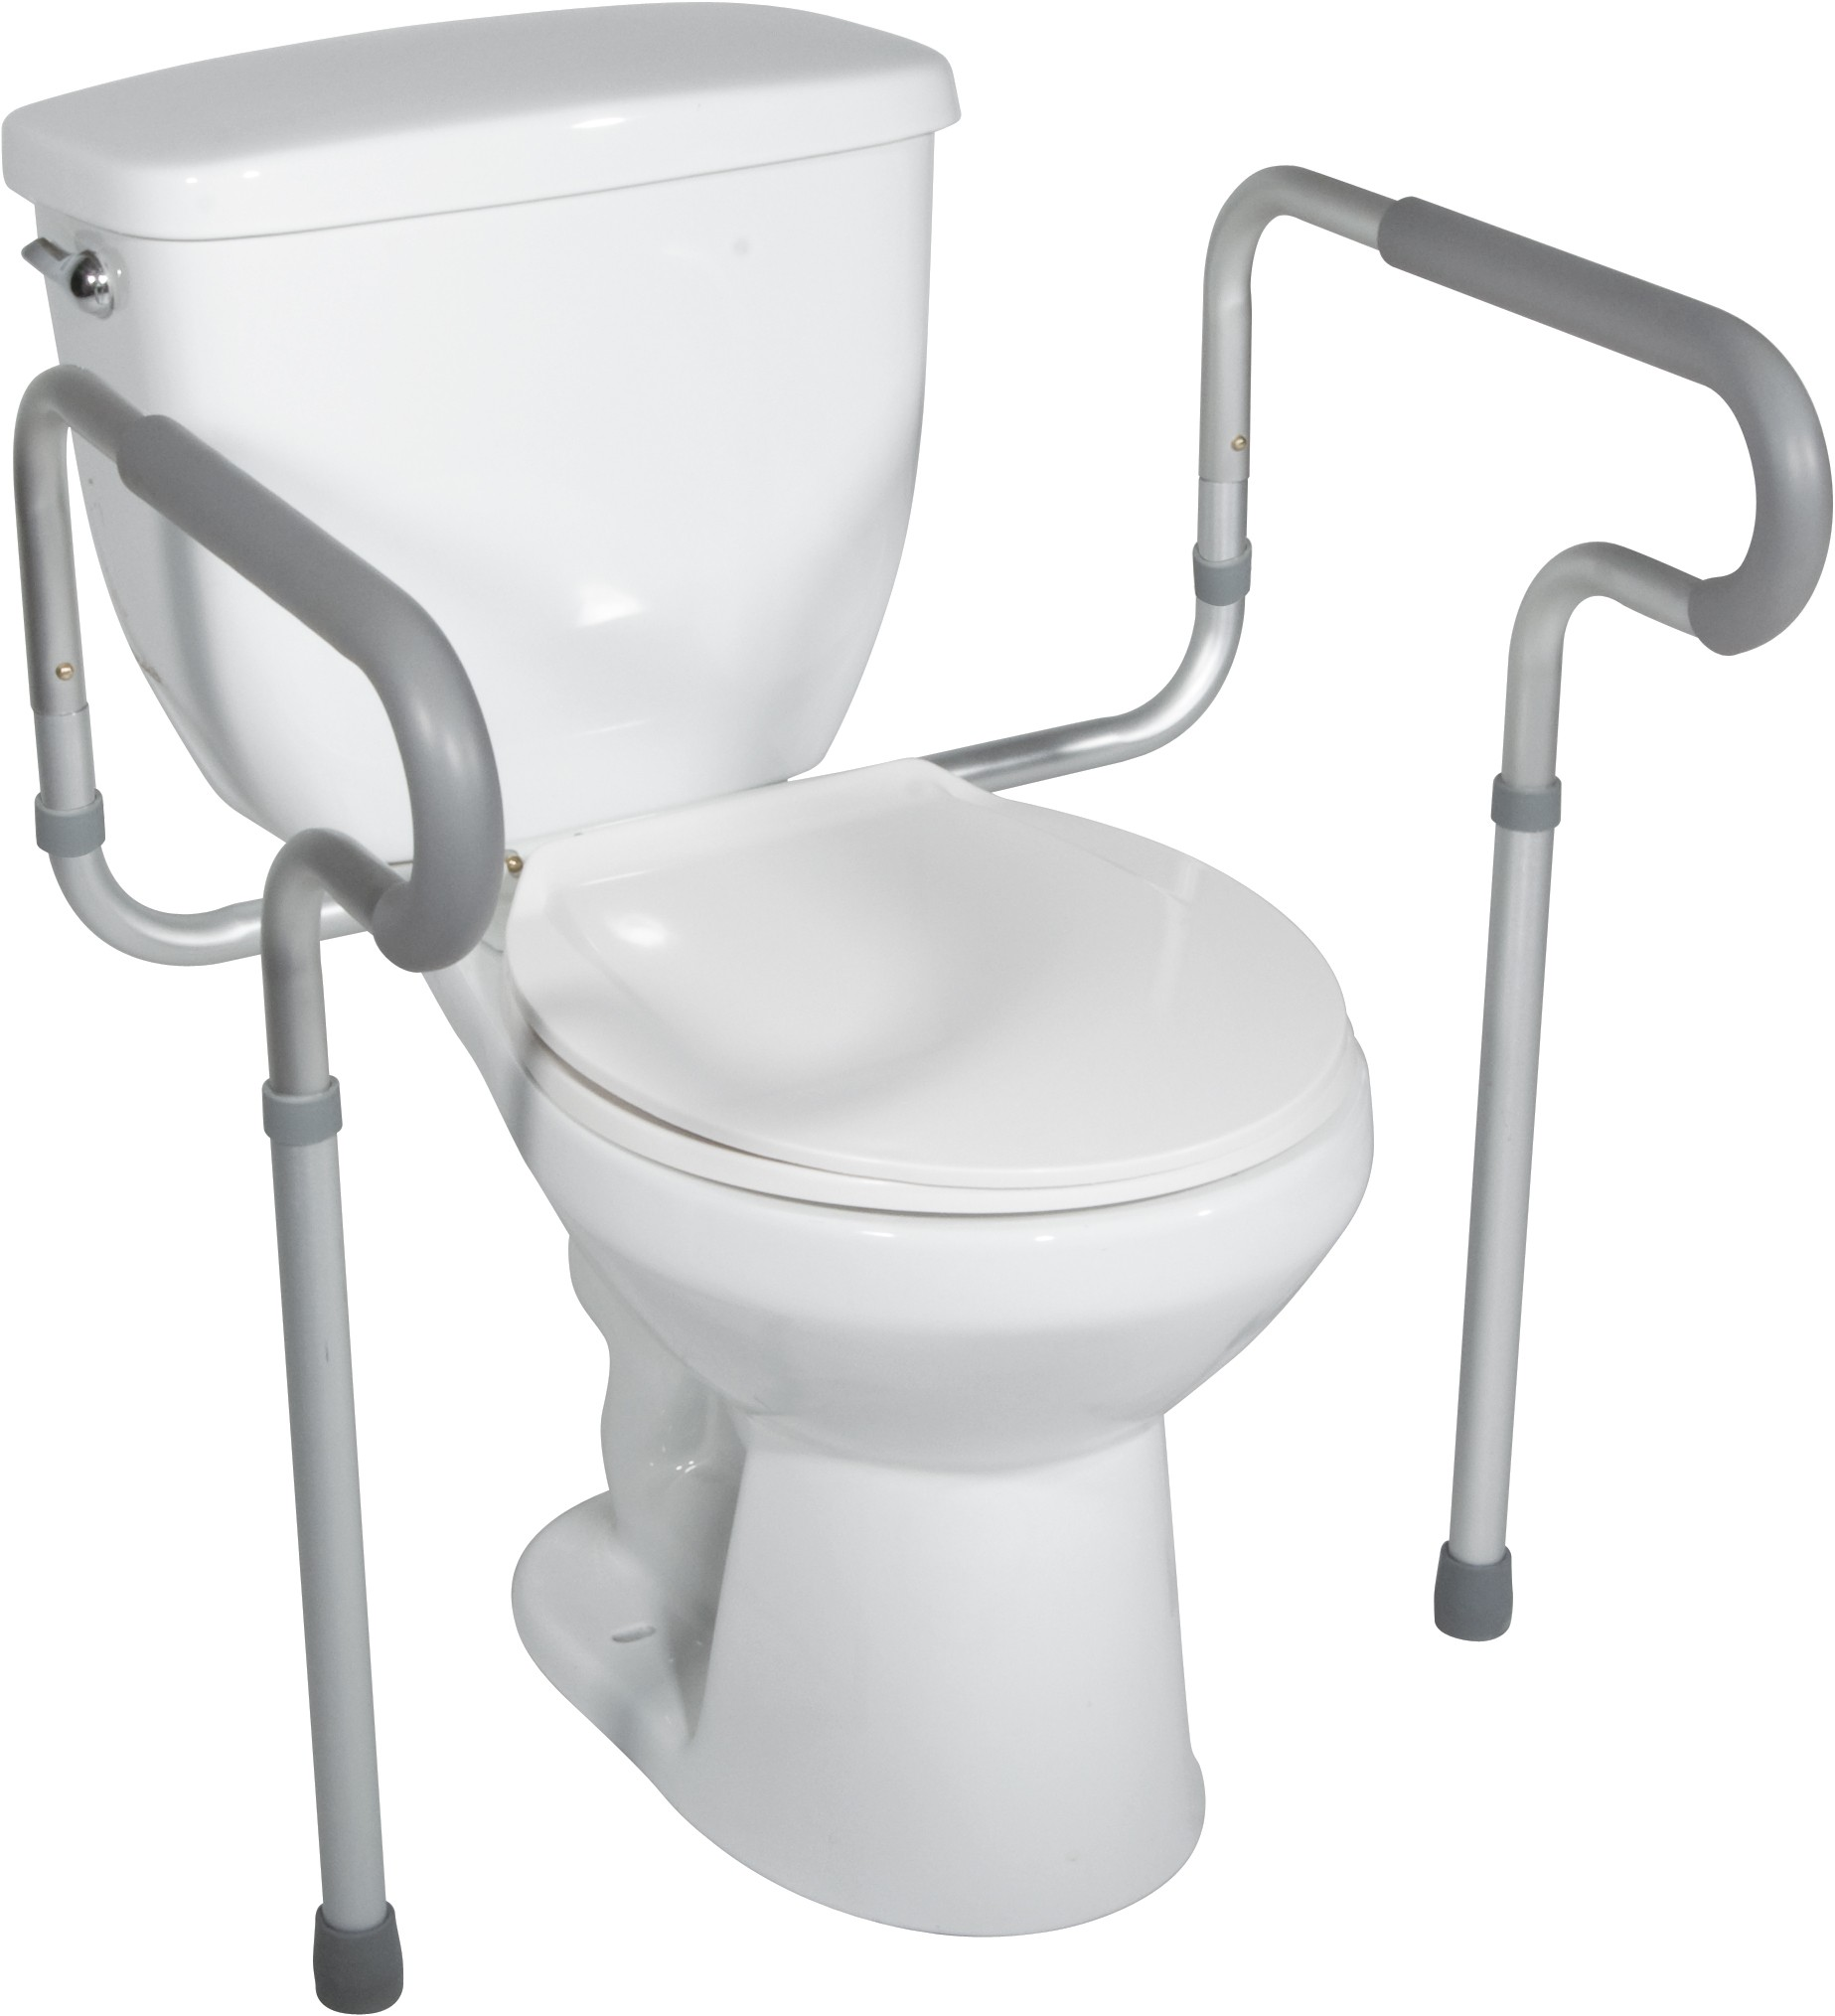 Toilet Safety Frame With Padded Arms Mobility1st London Ontario